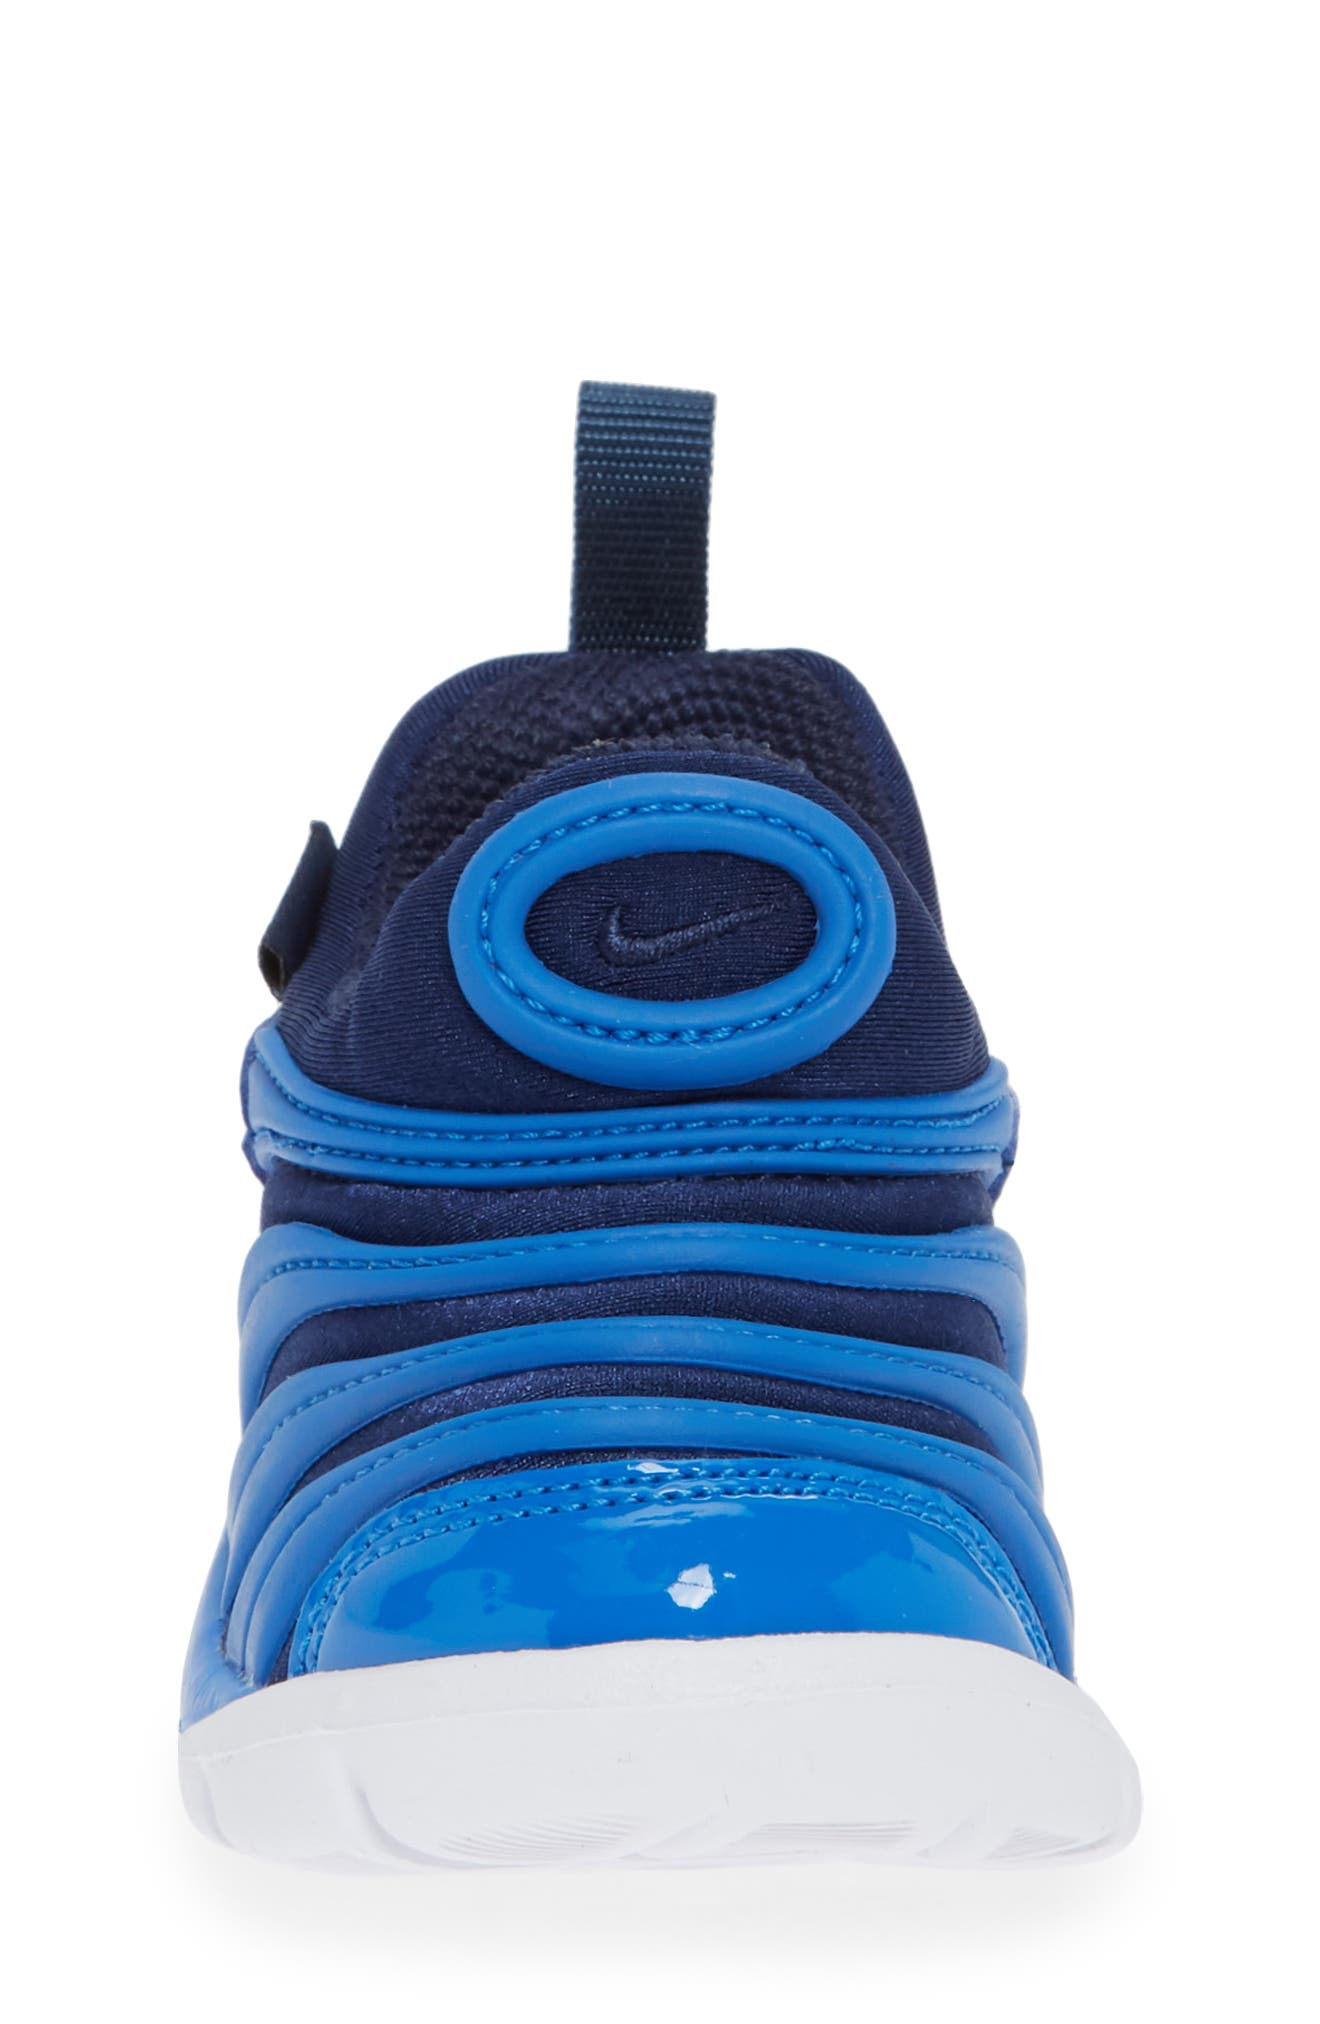 Dynamo Free Sneaker,                             Alternate thumbnail 4, color,                             SIGNAL BLUE/ MIDNIGHT/ WHITE